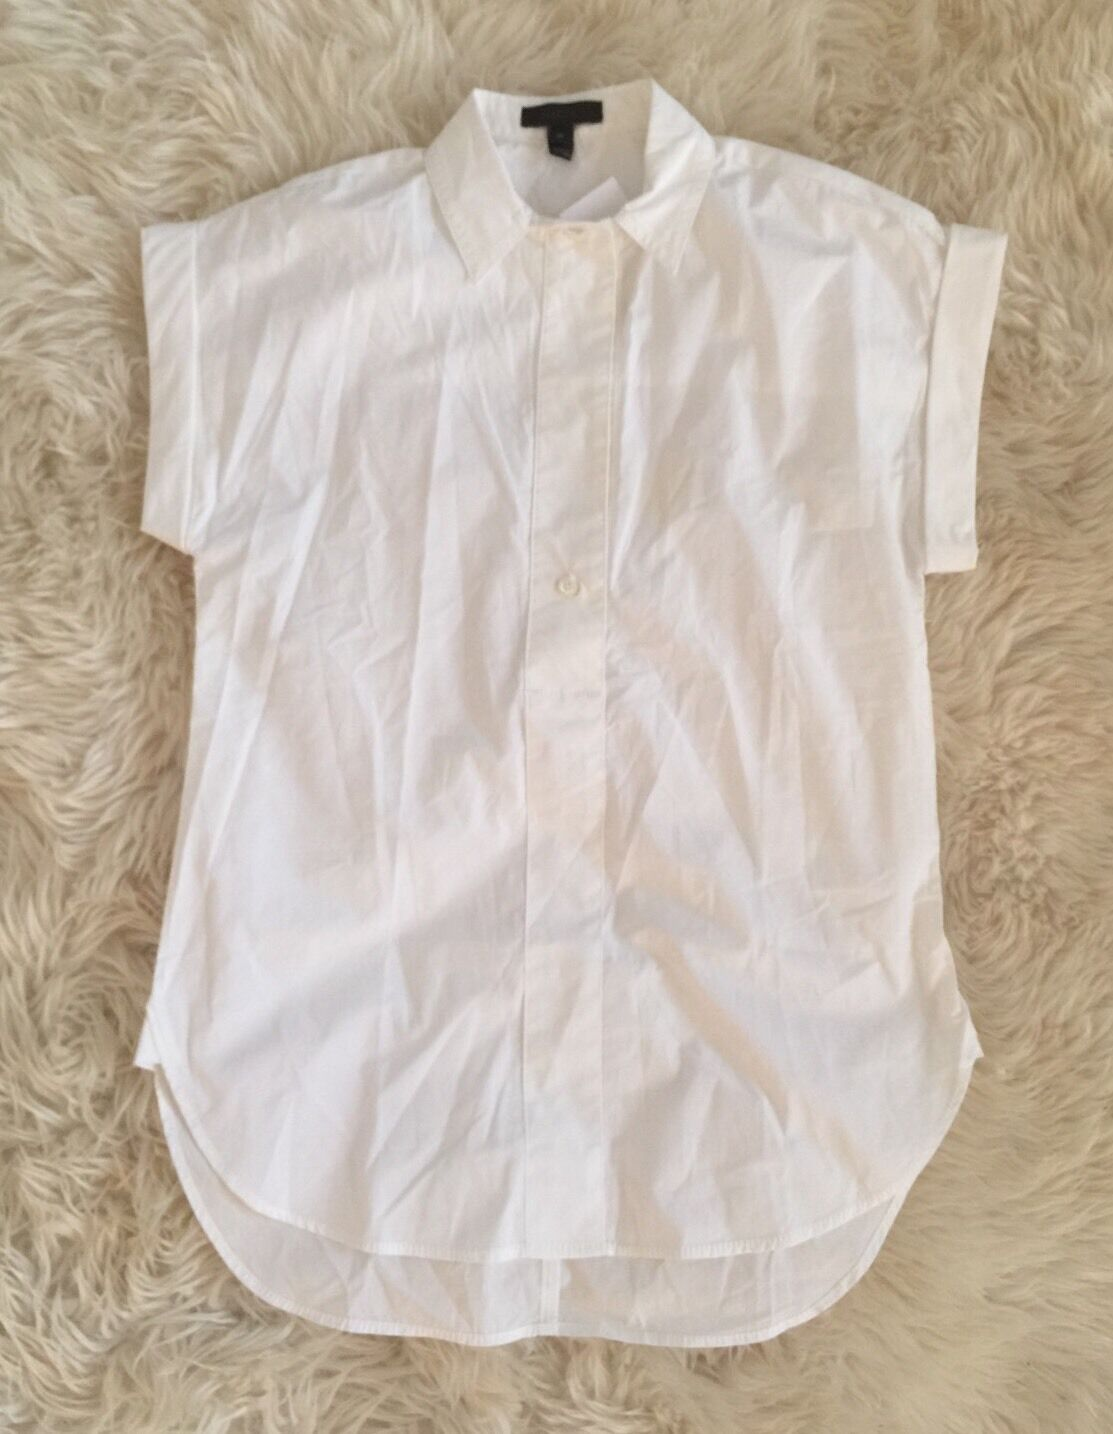 New Jcrew Petite short-sleeve popover shirt Weiß 0P C8252